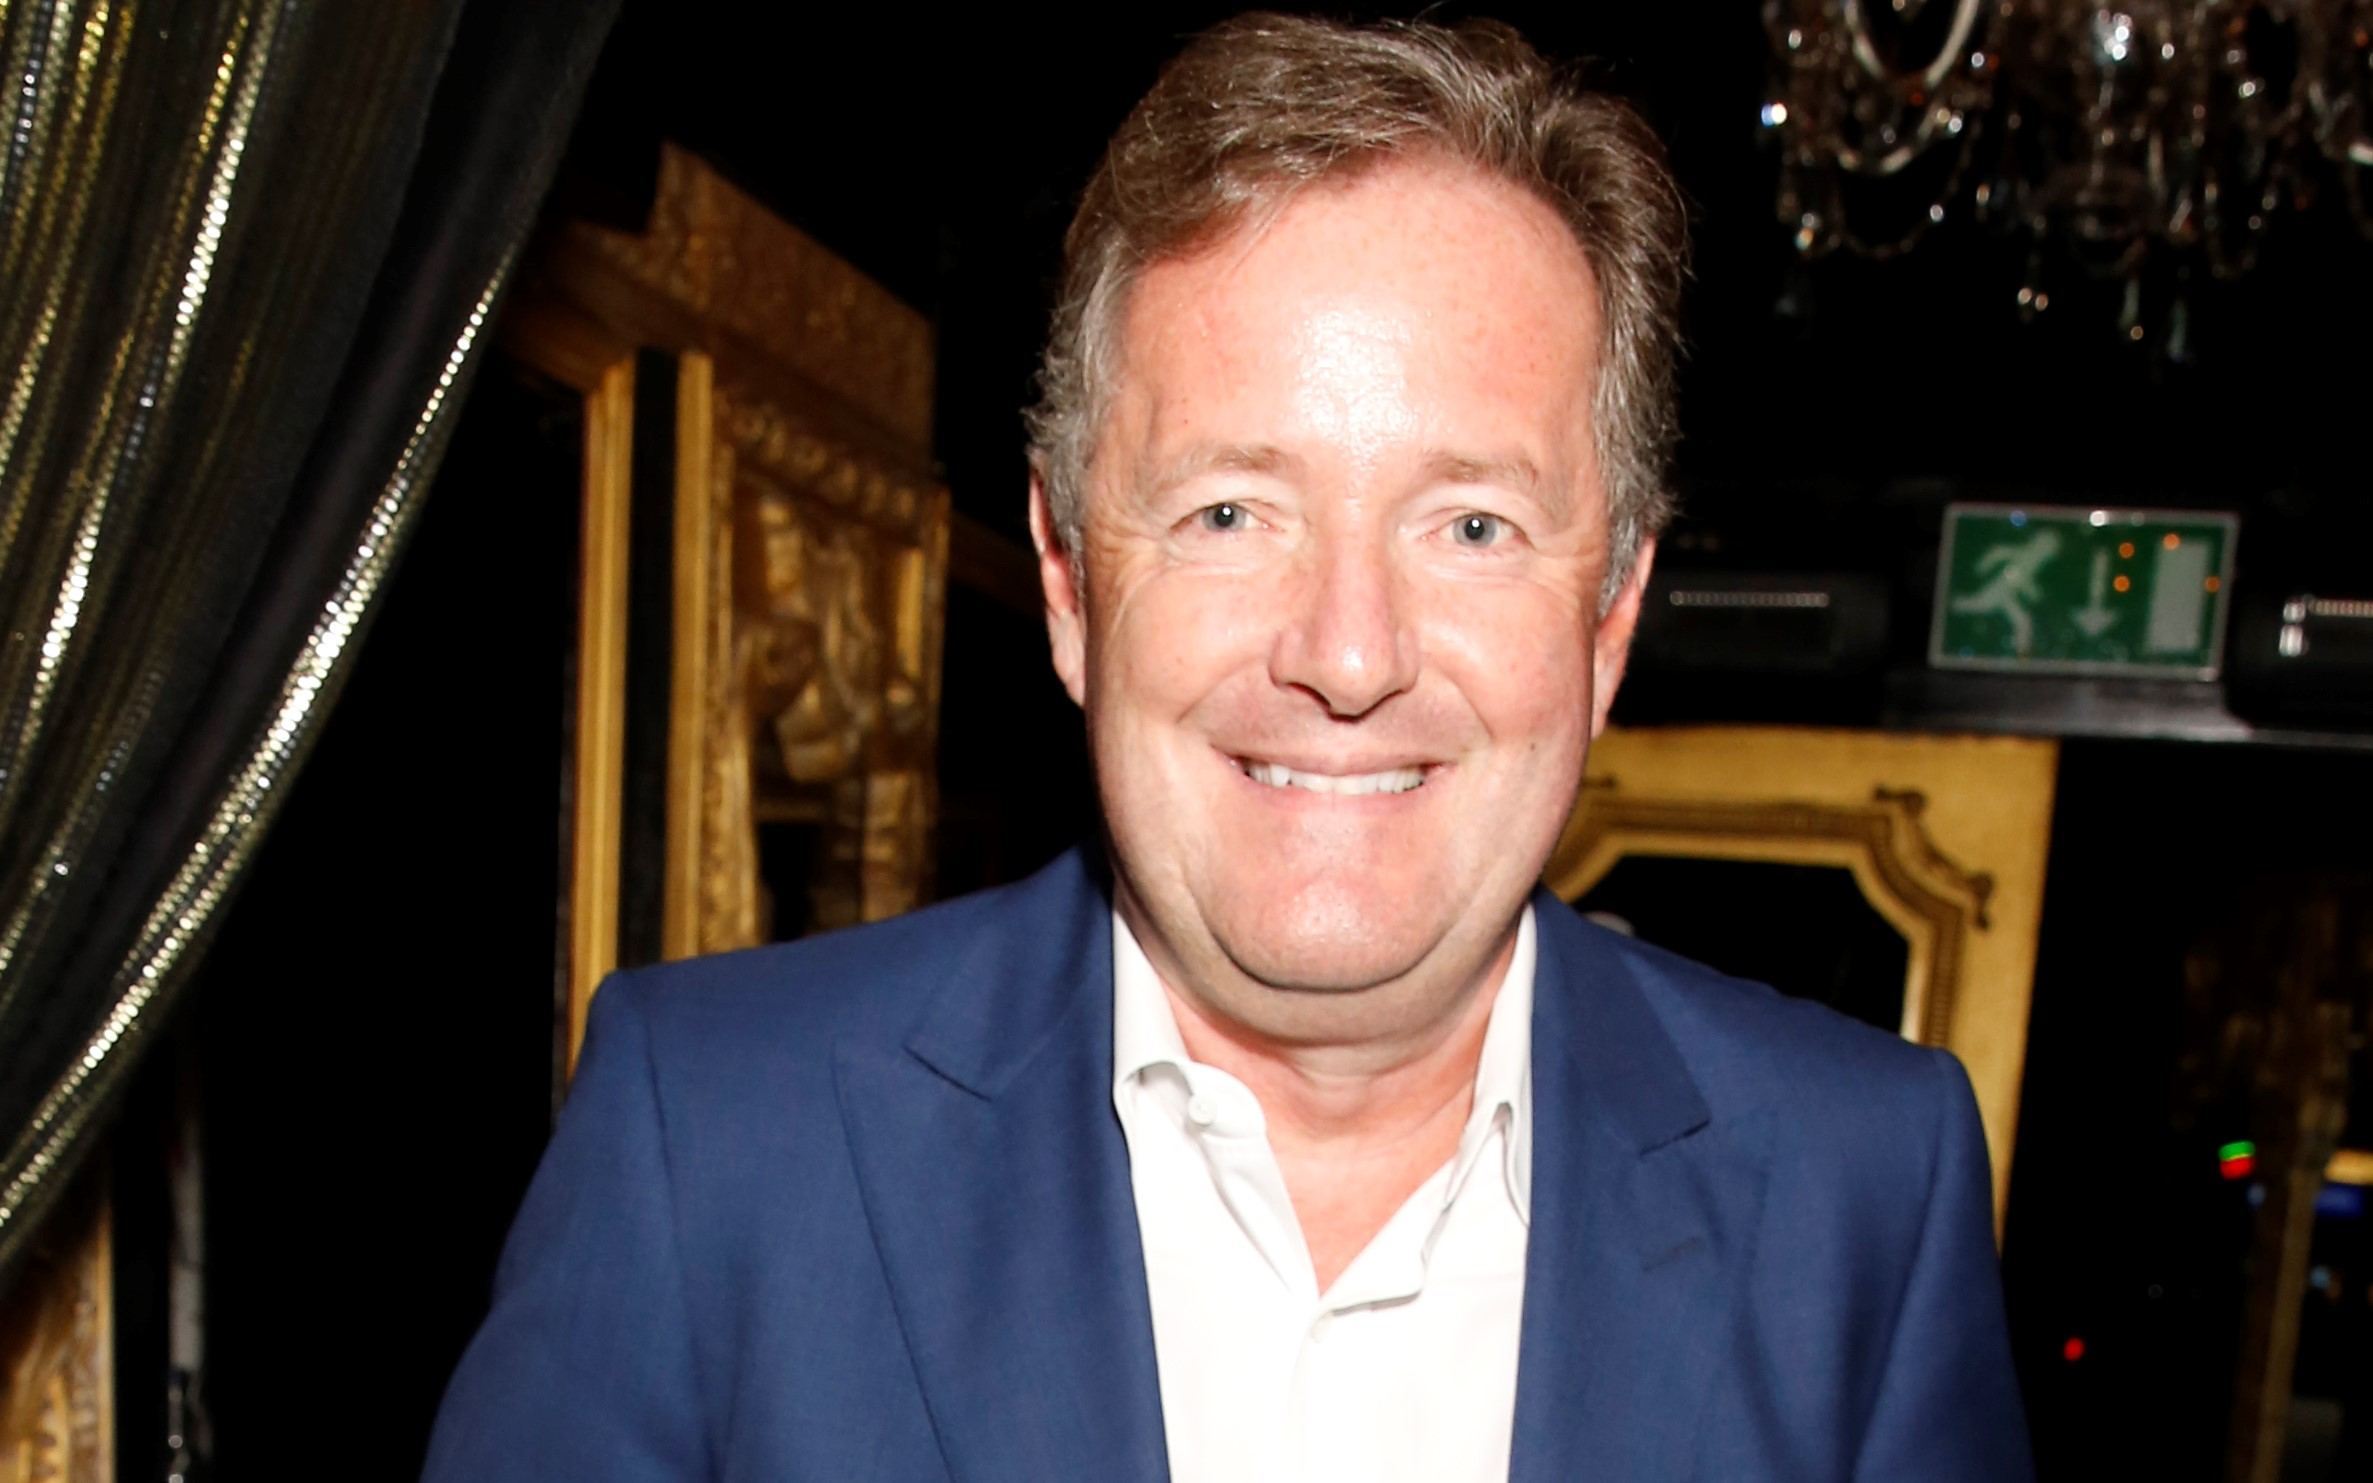 Piers Morgan thrills fans as he shares sweet photo with son and Mark Wright